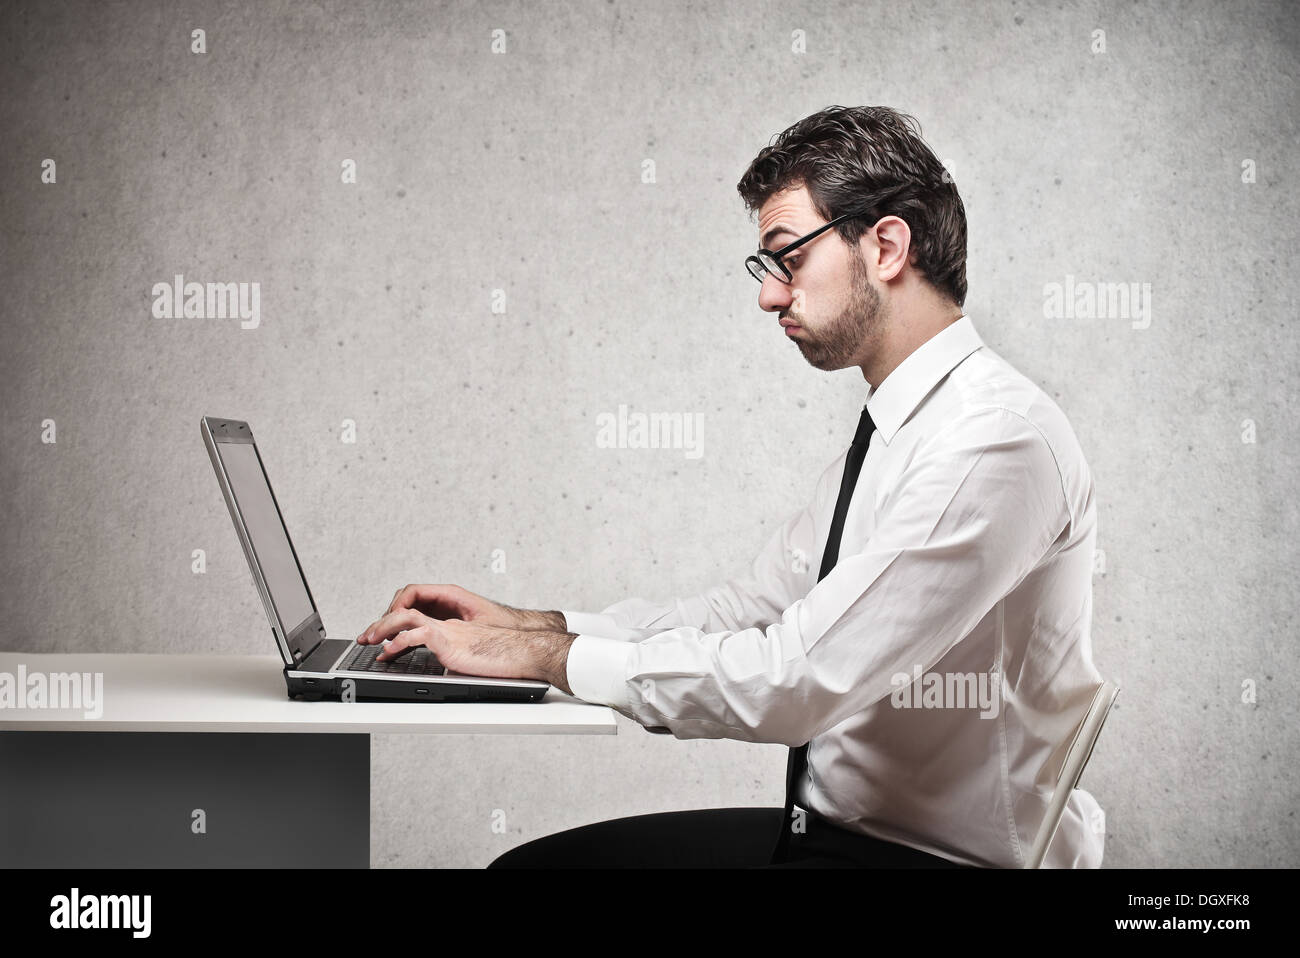 Office worker using a laptop - Stock Image